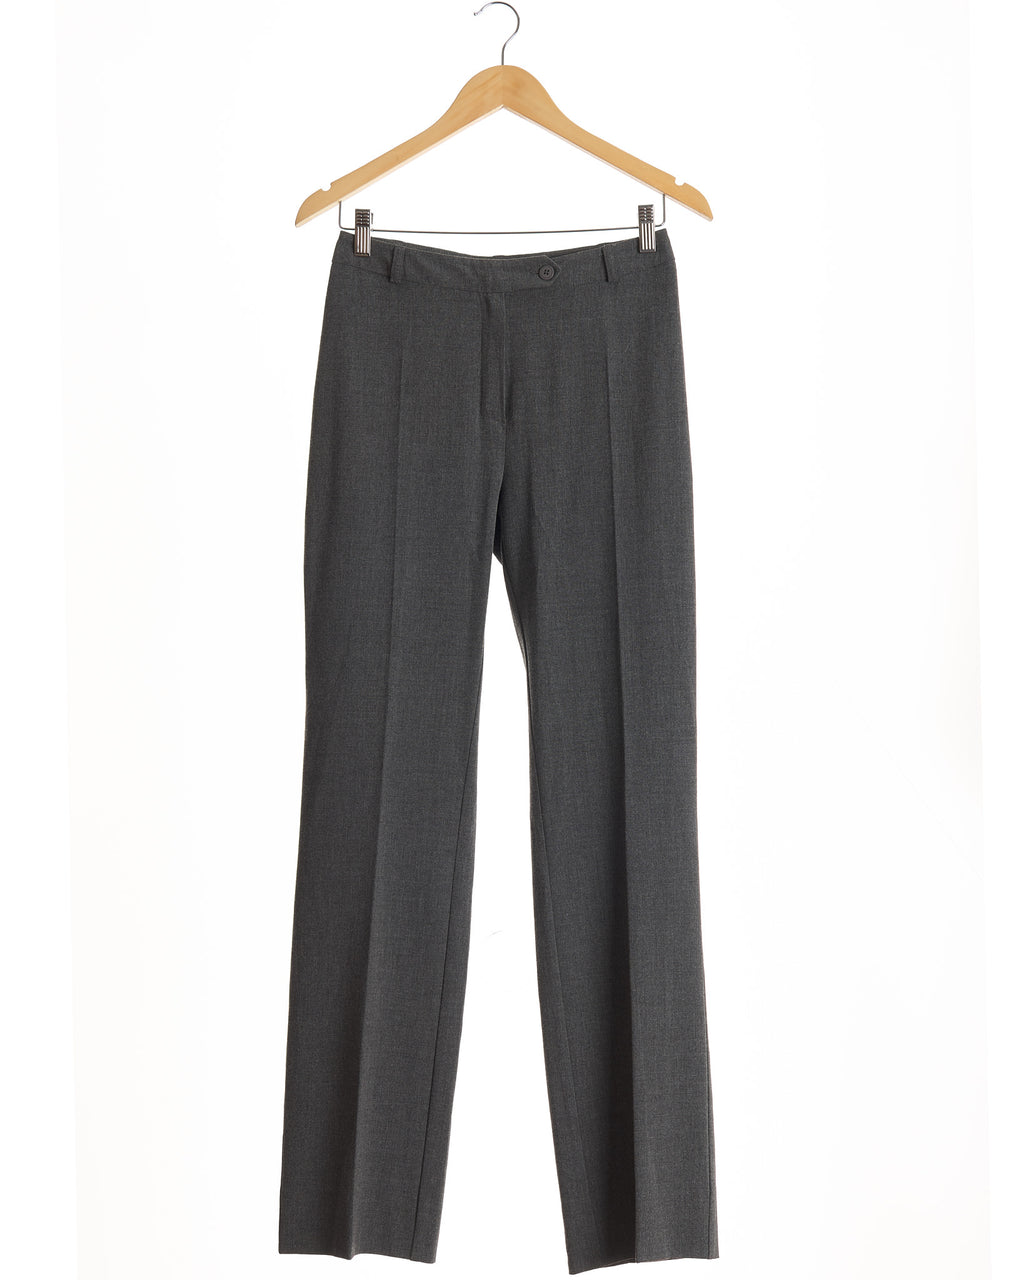 Graphite Grey Tailored Vintage Trousers